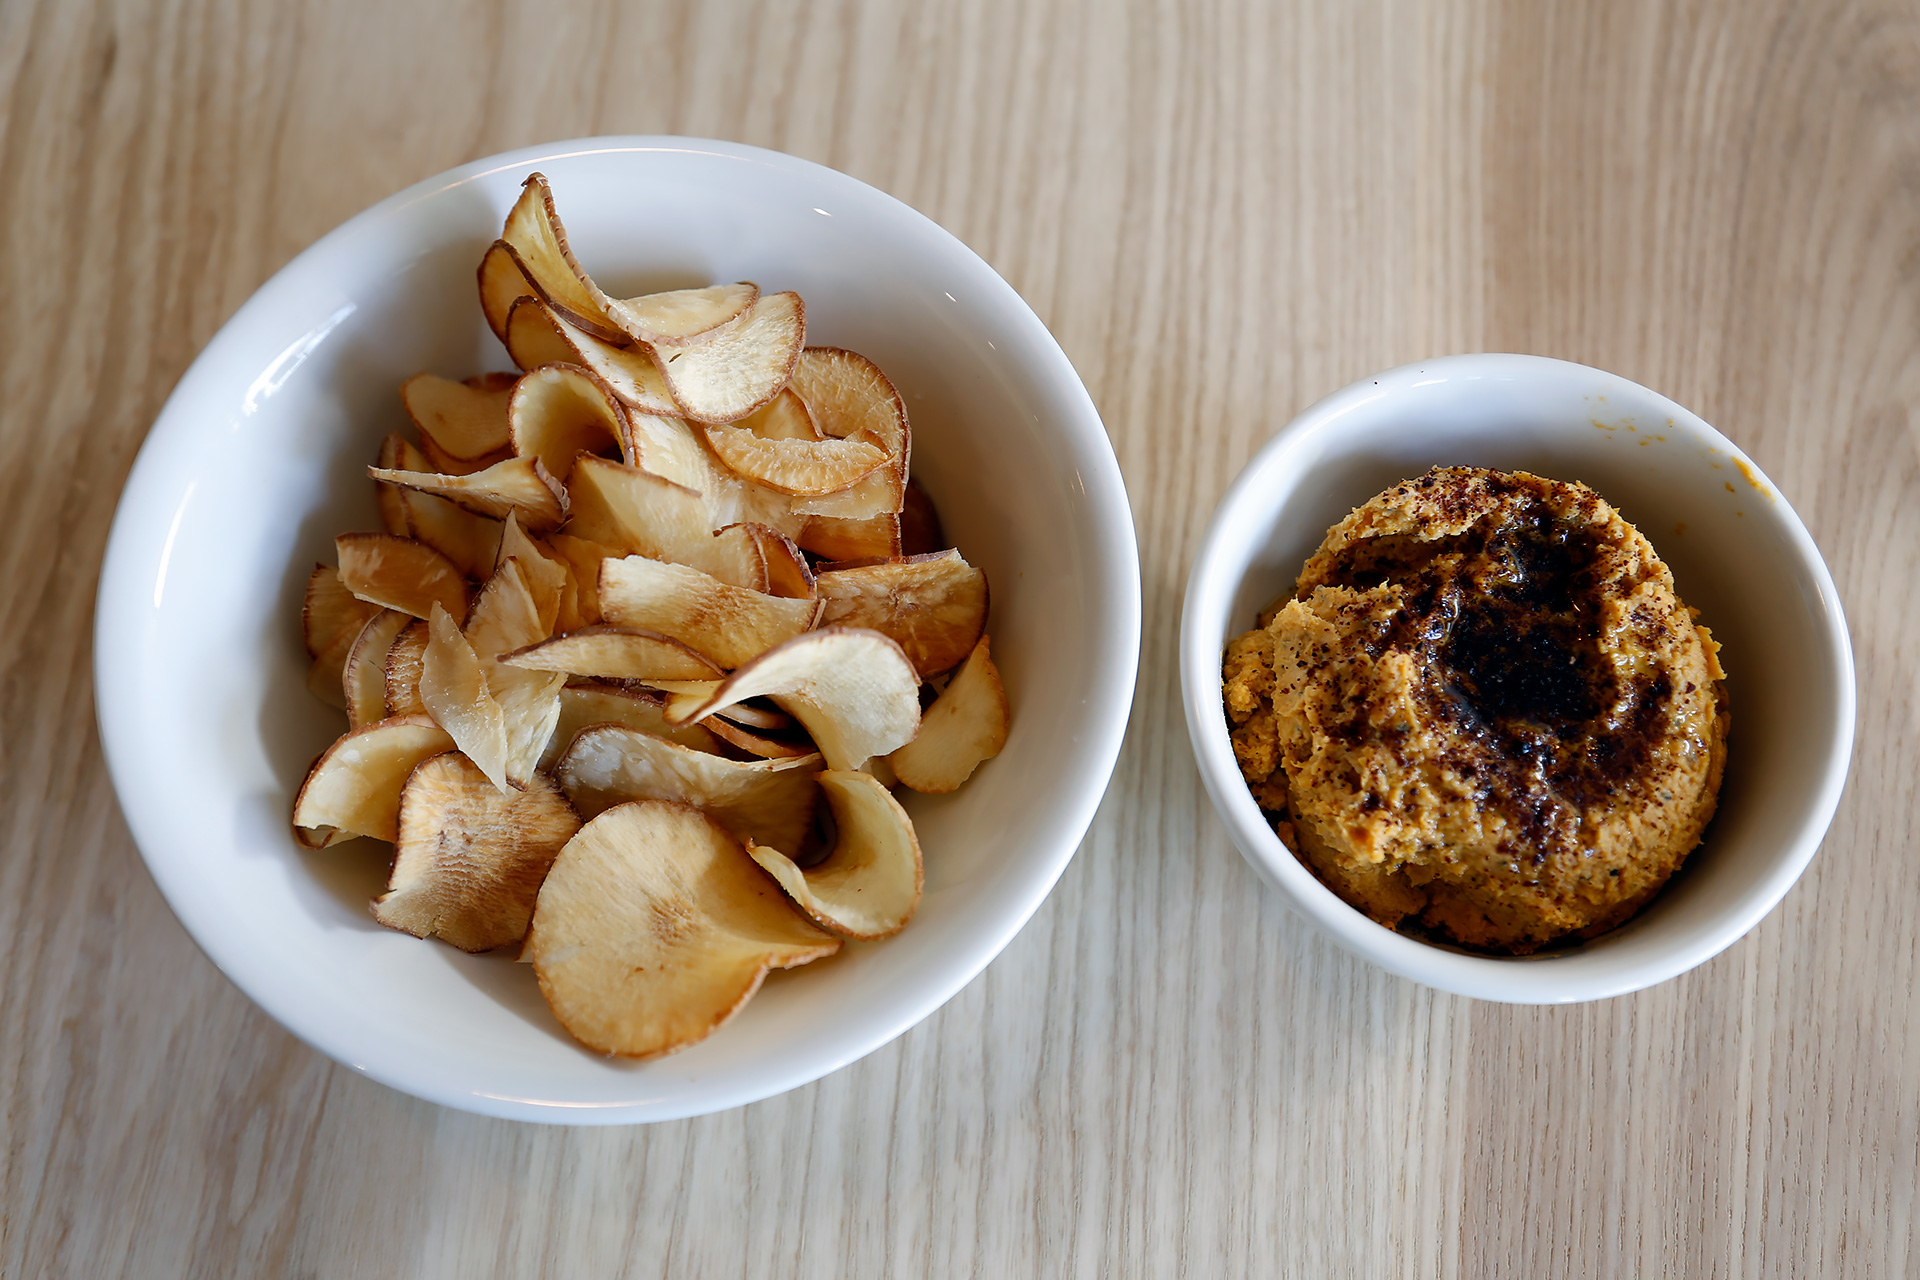 Butternut squash hummus and yucca chips.